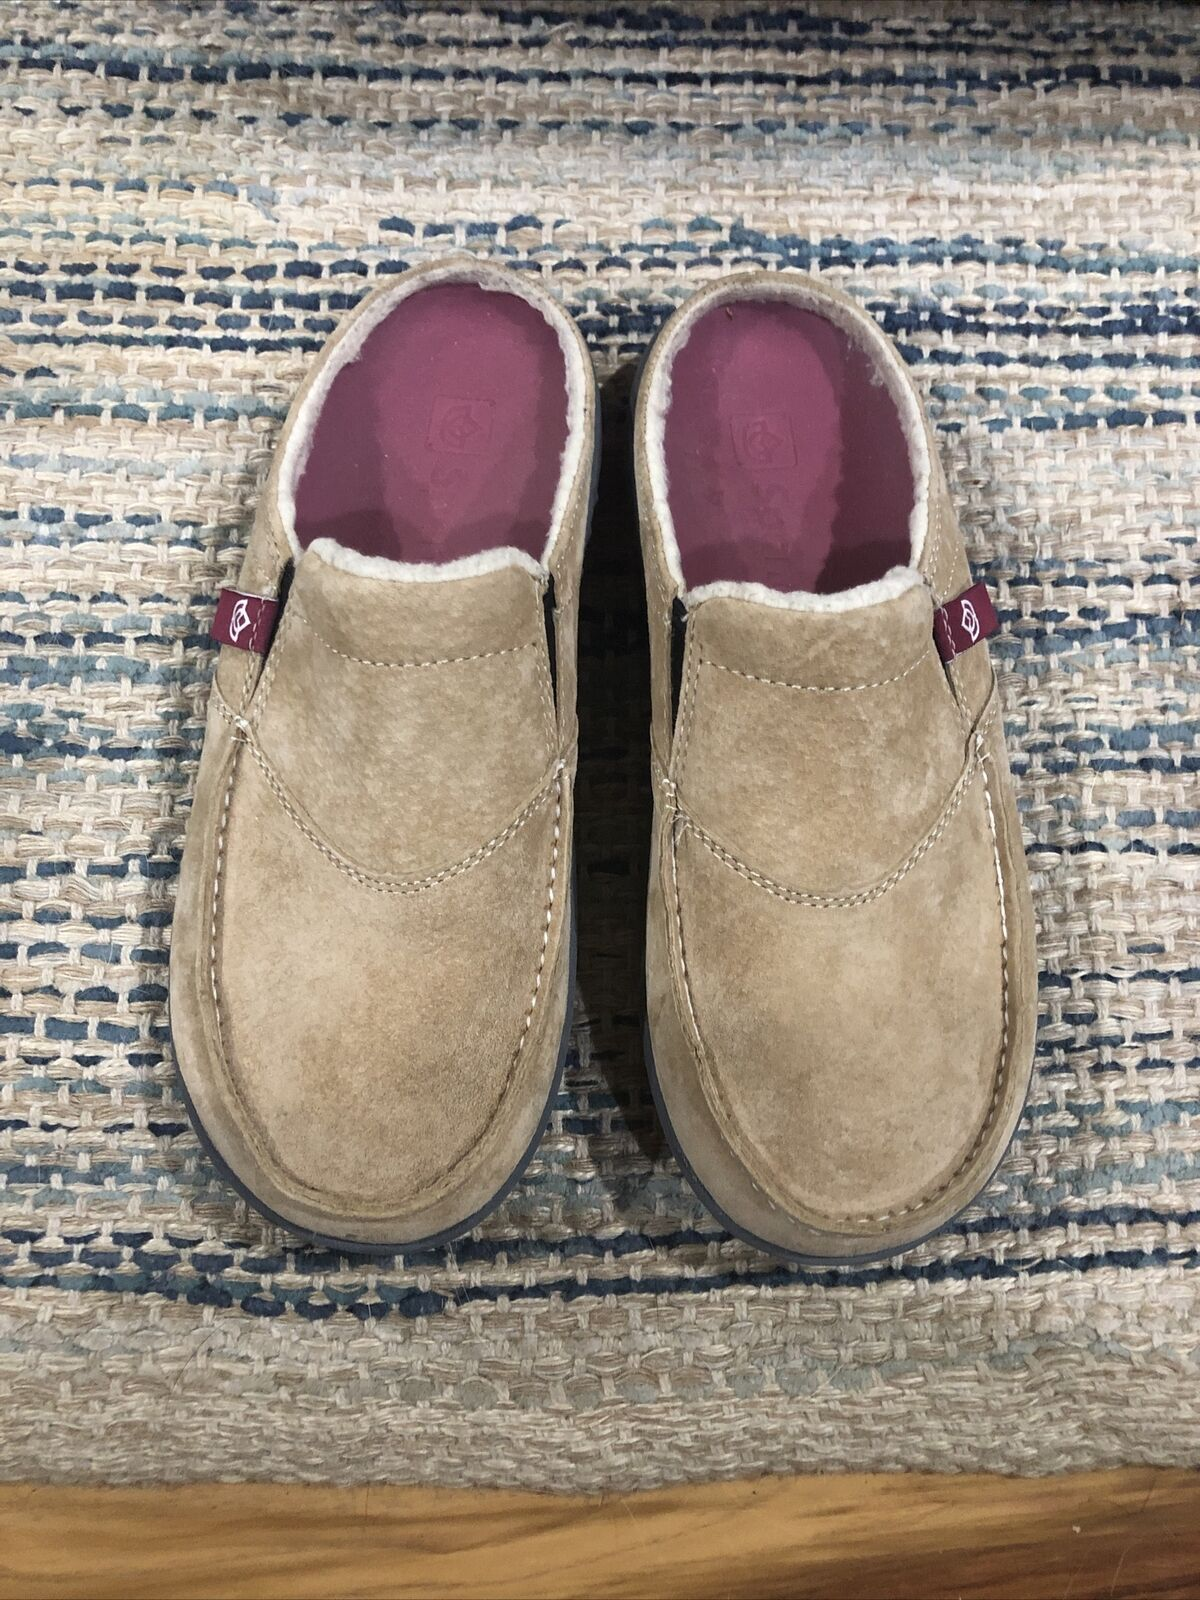 Spenco Orthotic Tan Suede Women's 5 M Cozy Slides Slip On Mule Loafer Moc Shoes